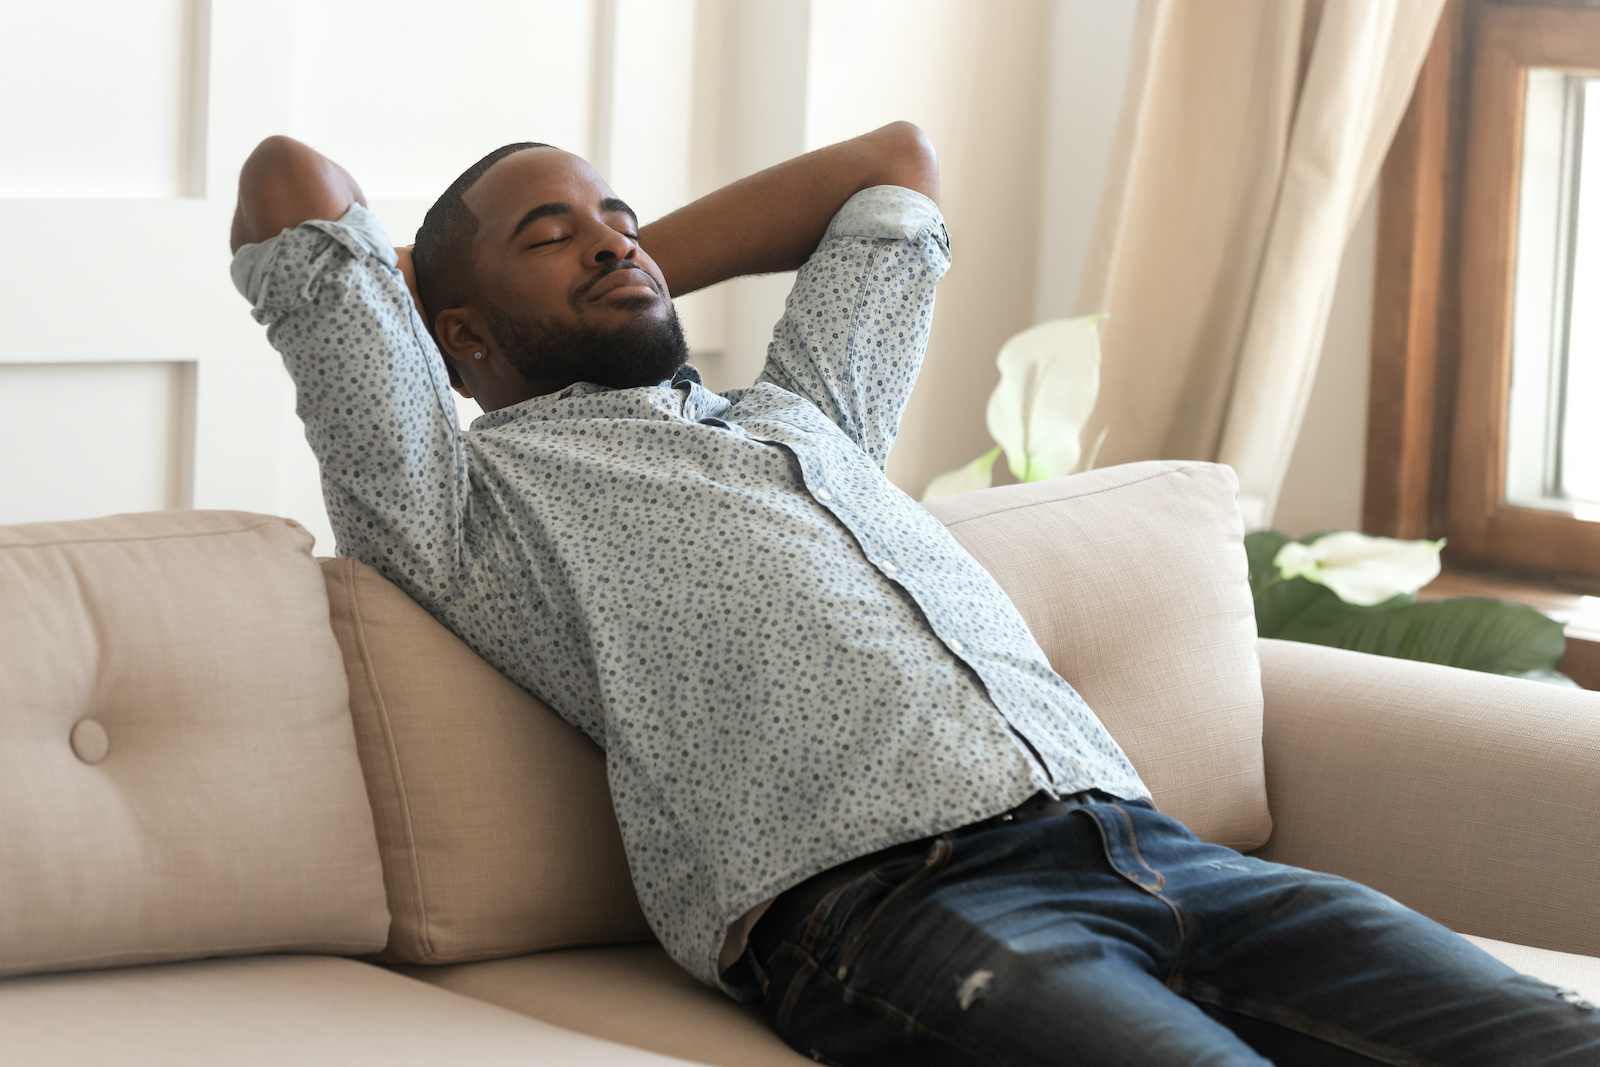 Best debt relief: A man leaning back, relaxing on the couch